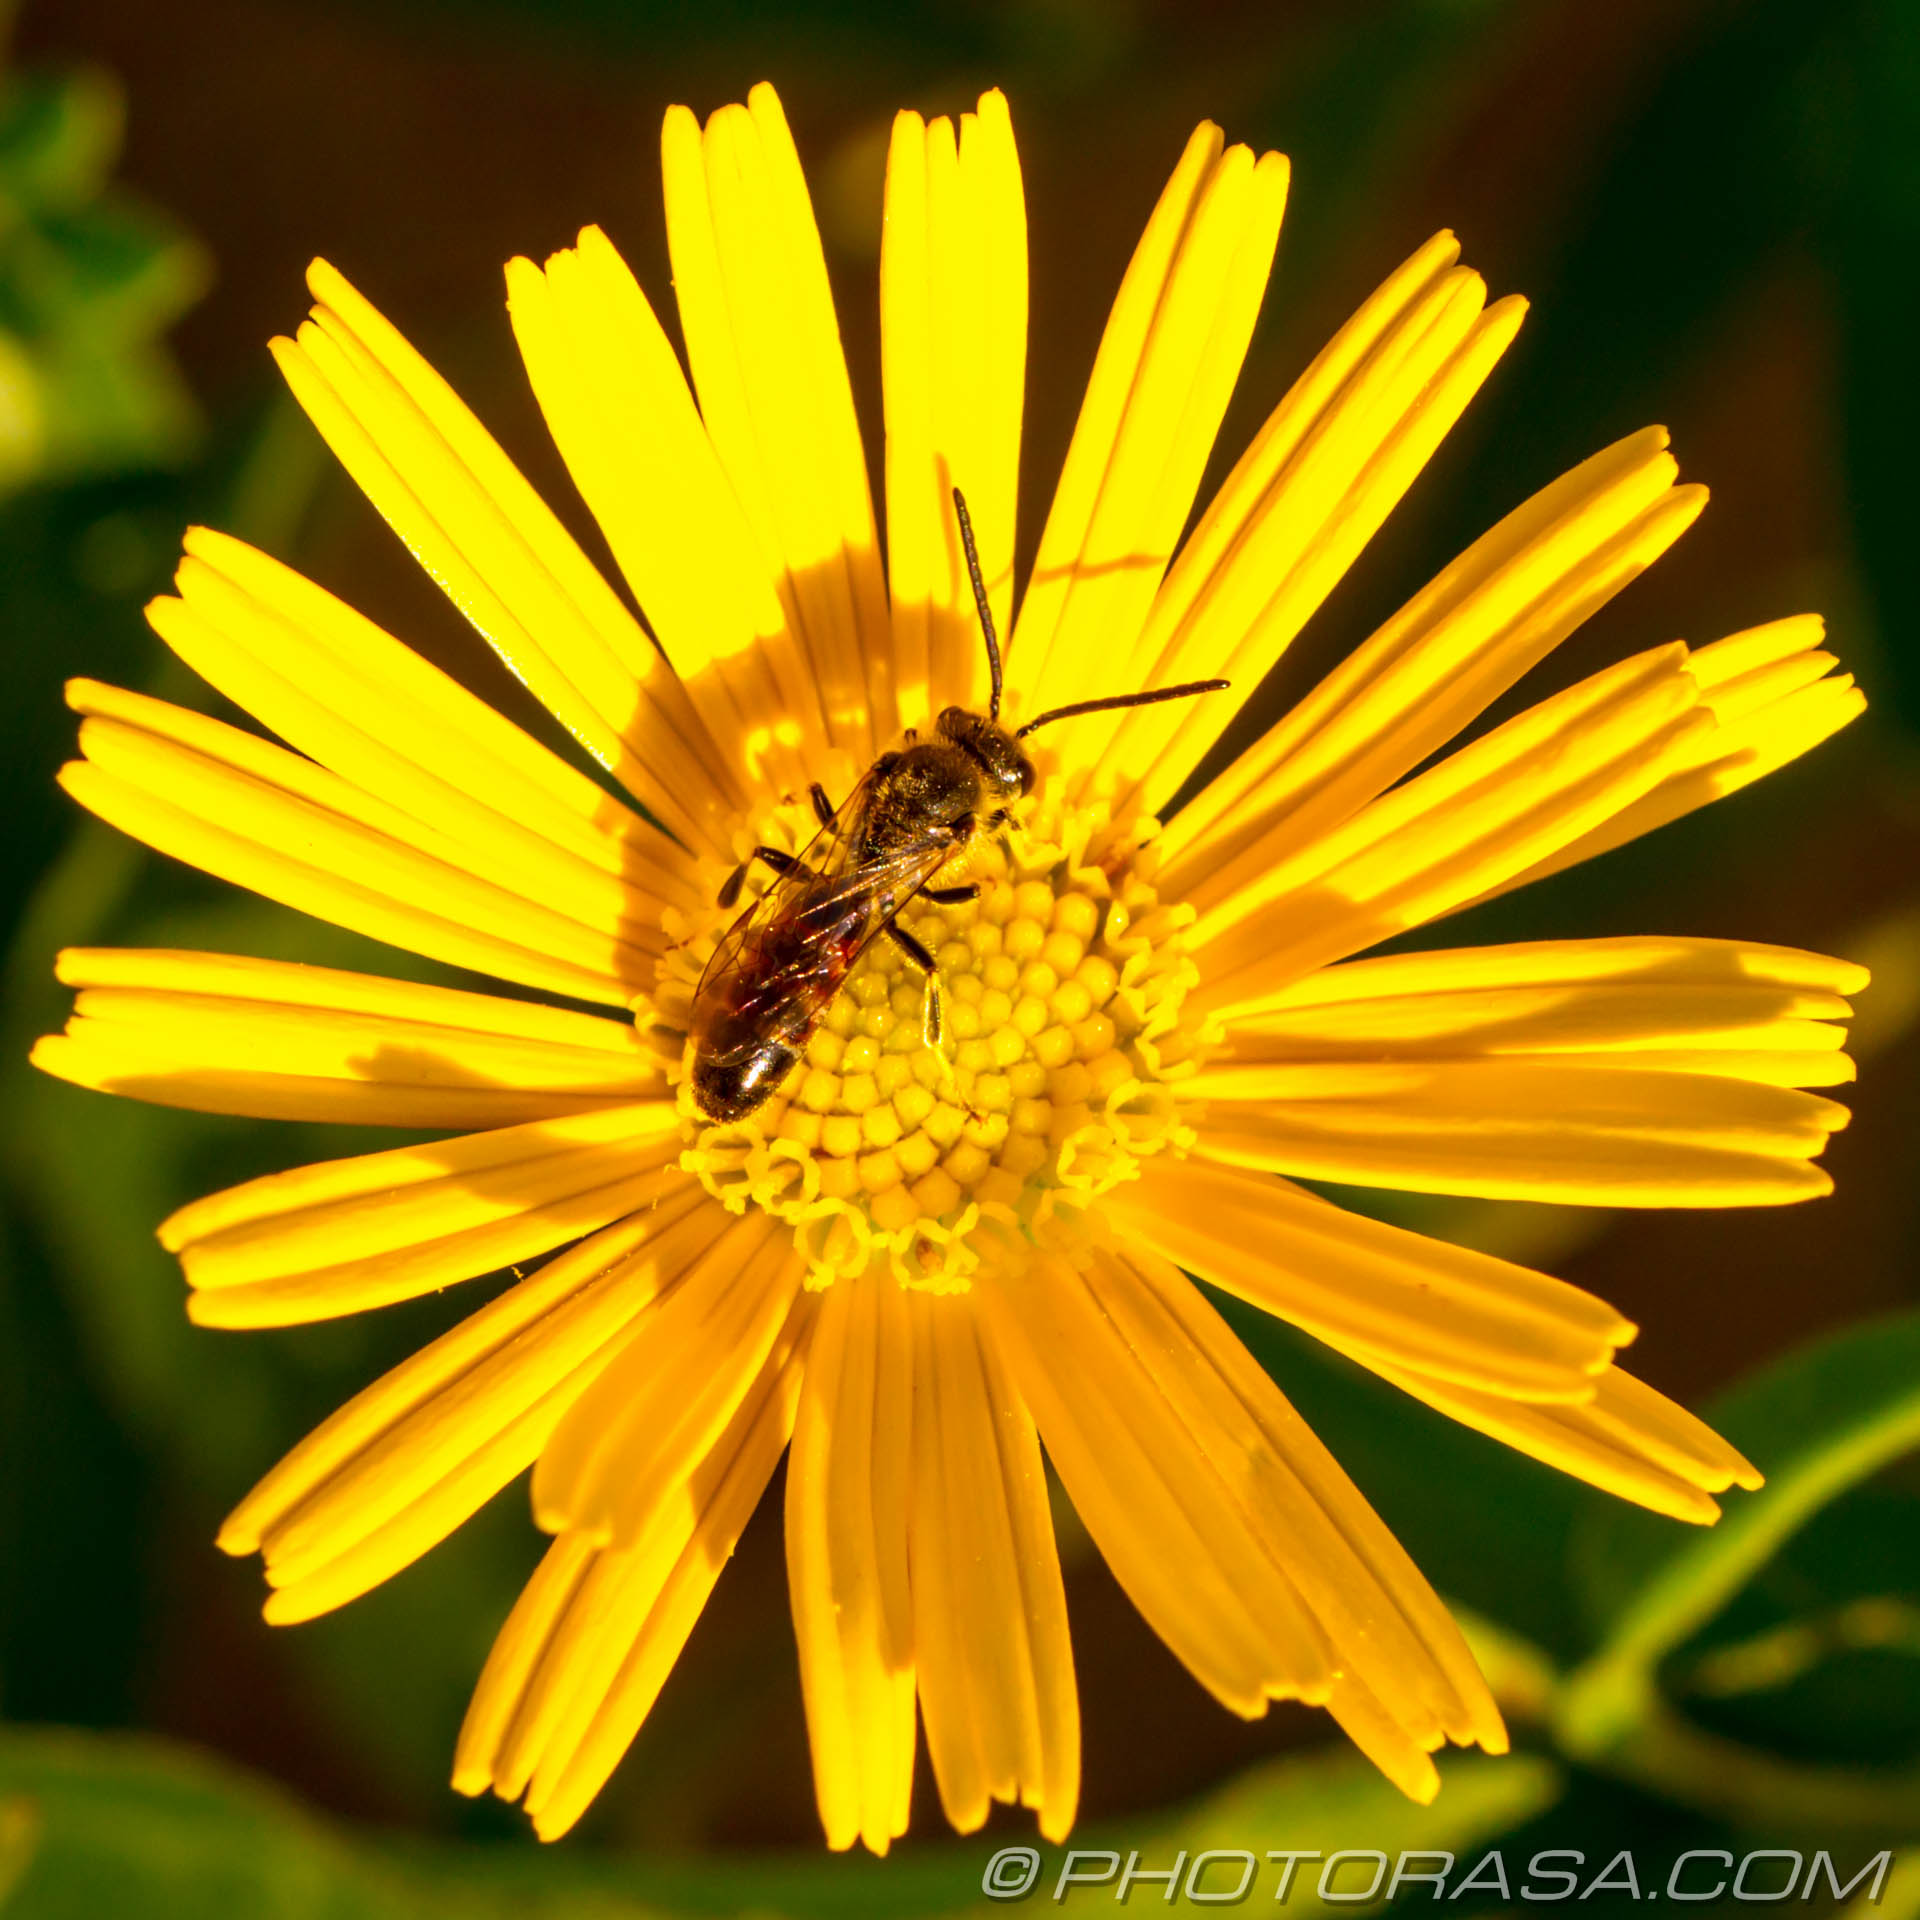 https://photorasa.com/flower-fly/sunny-flower-and-hoverfly/